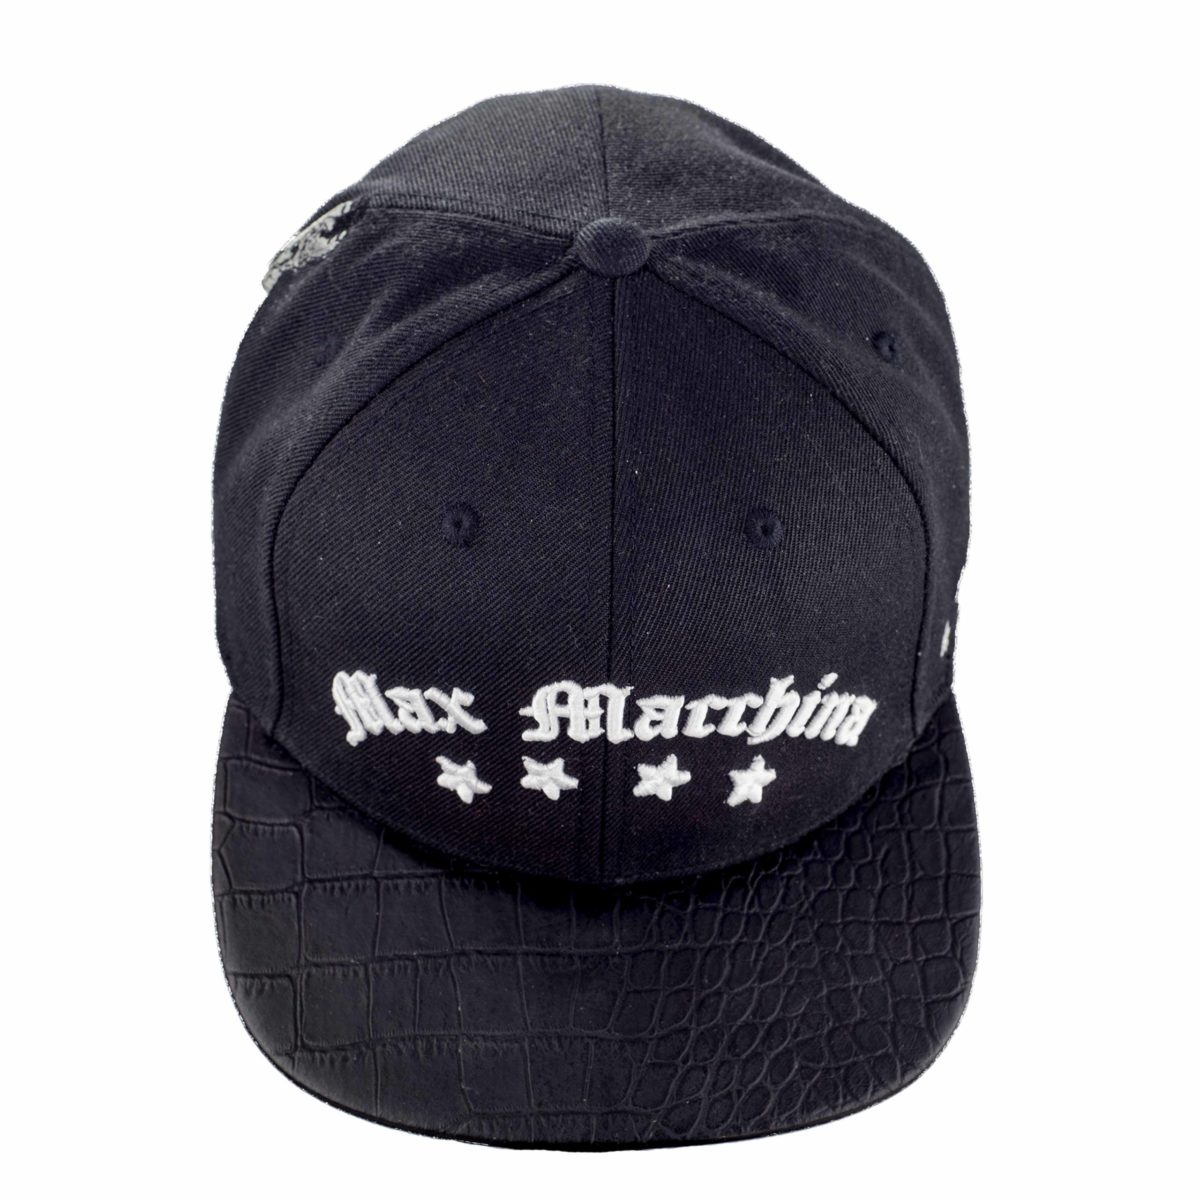 Luxury_Snapback_Rockstar_top